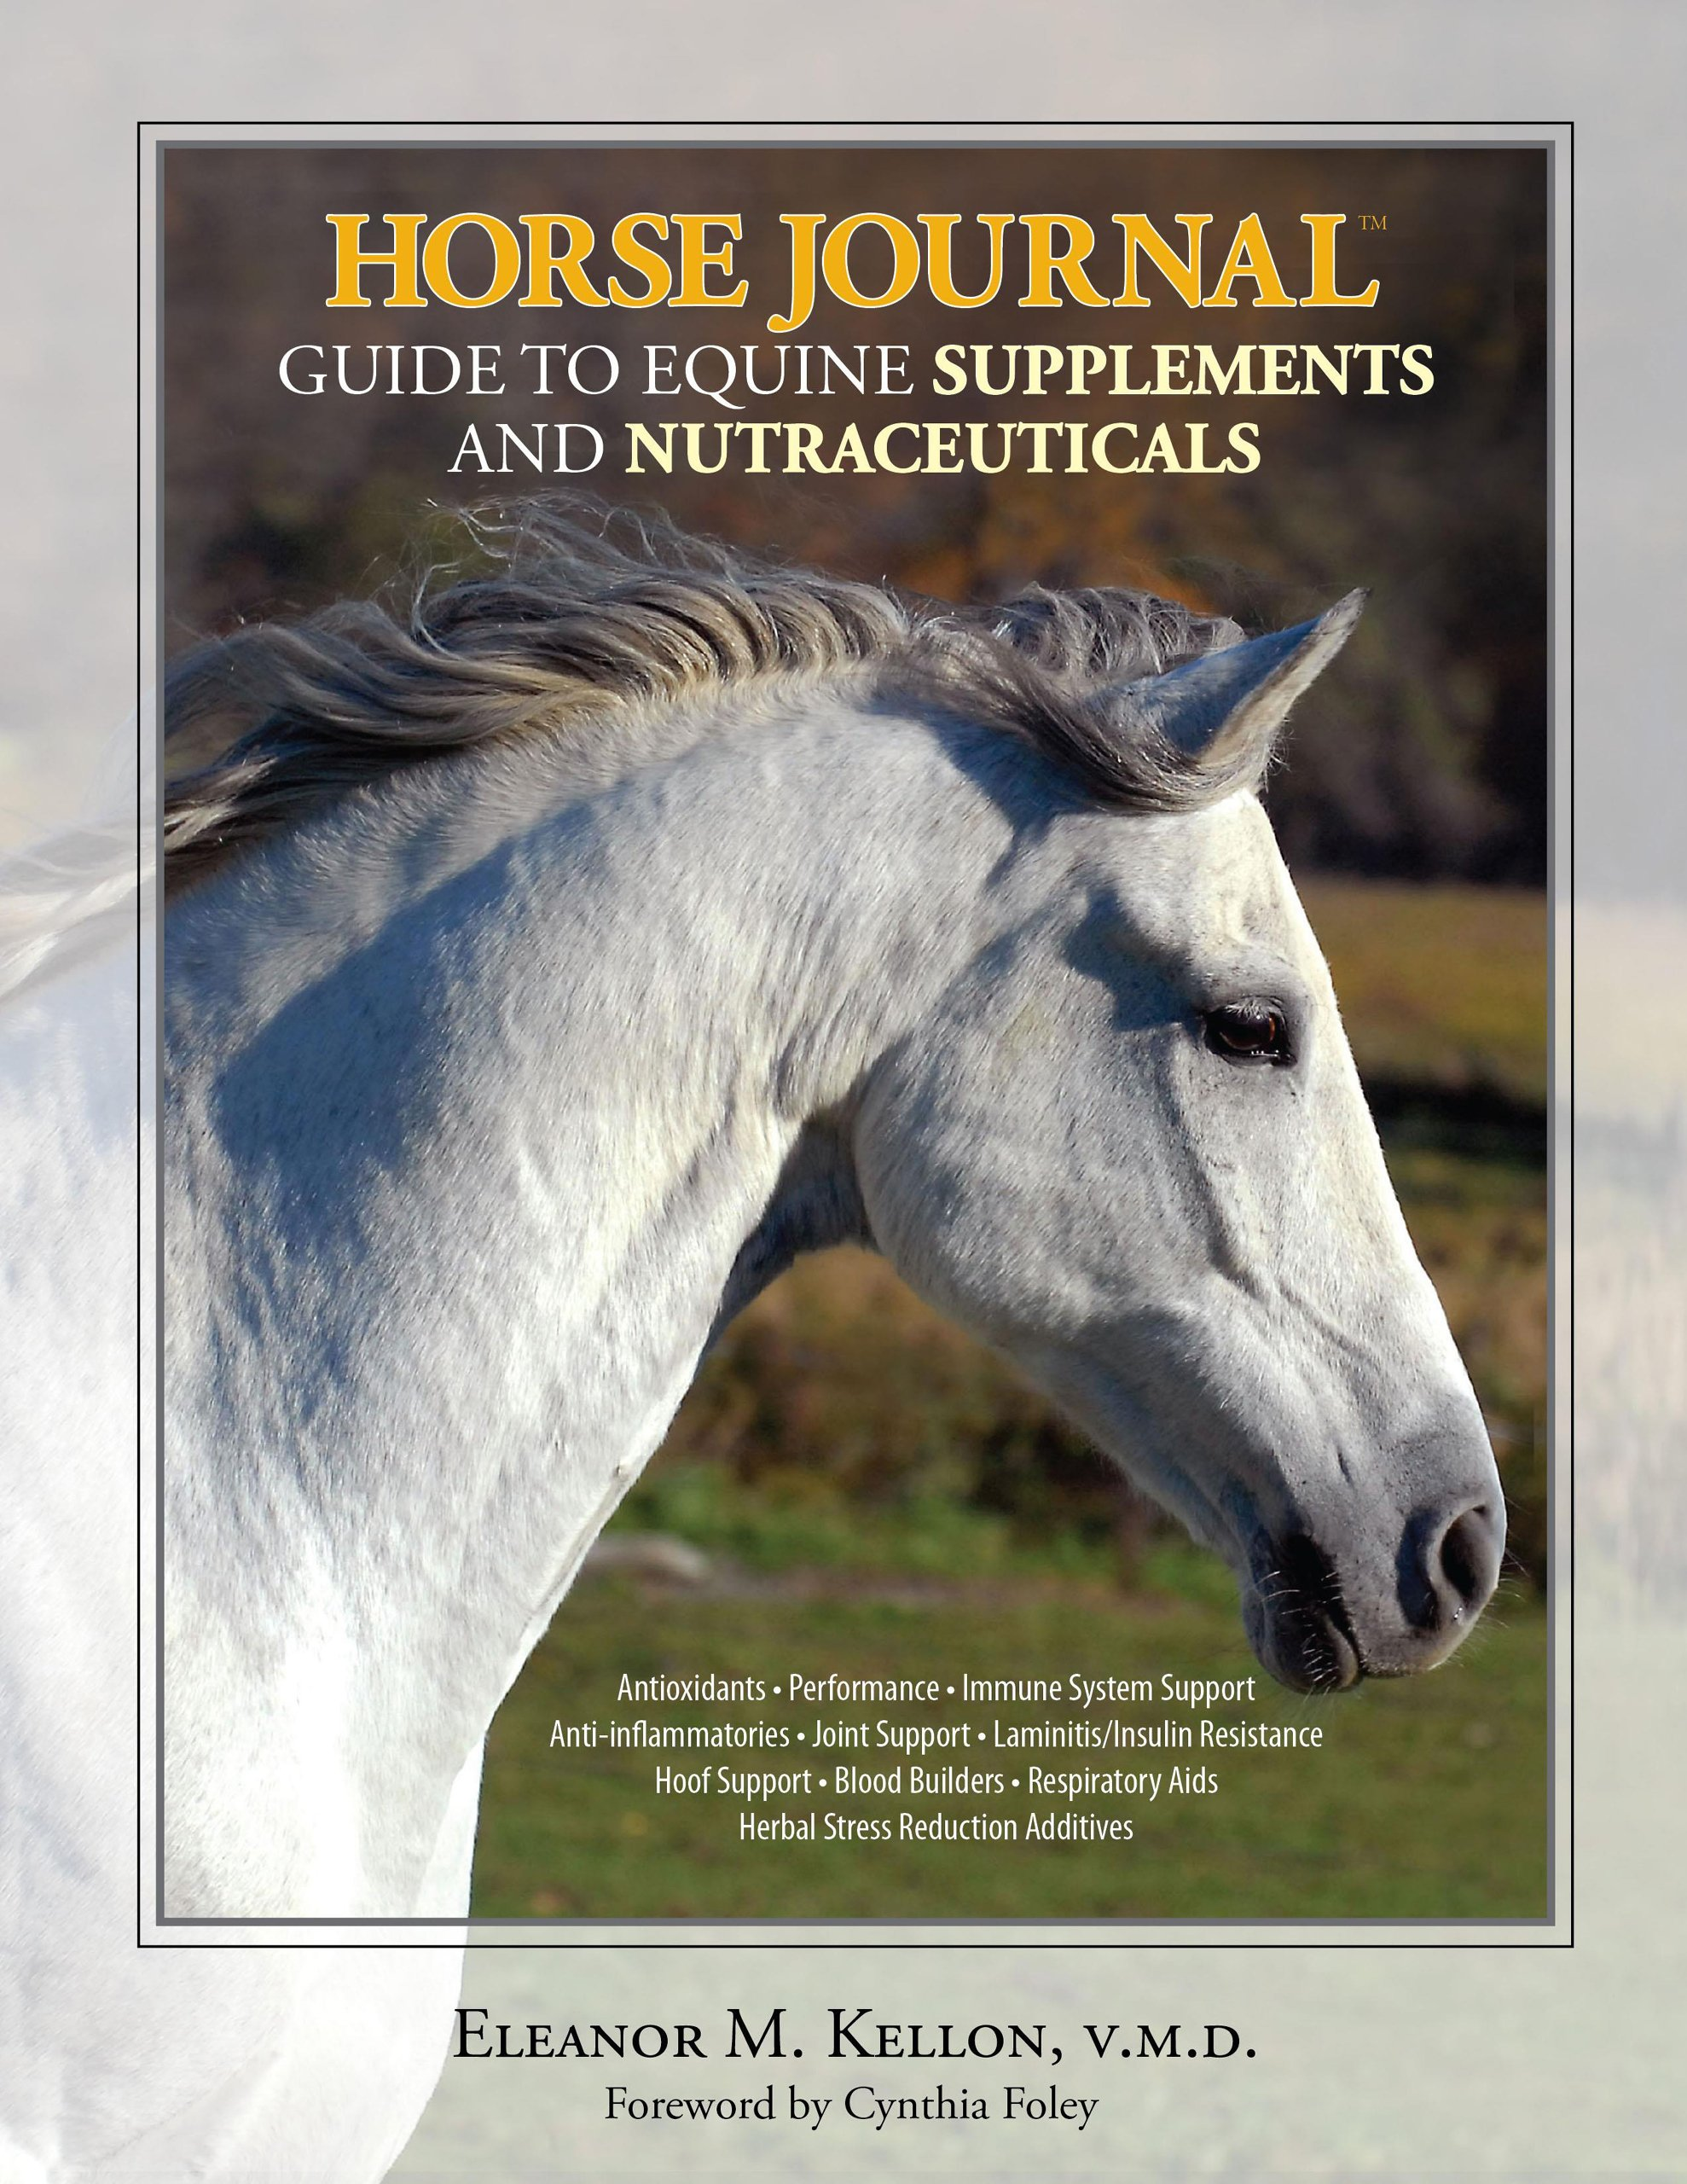 Horse Journal Guide to Equine Supplements and Nutraceuticals pdf